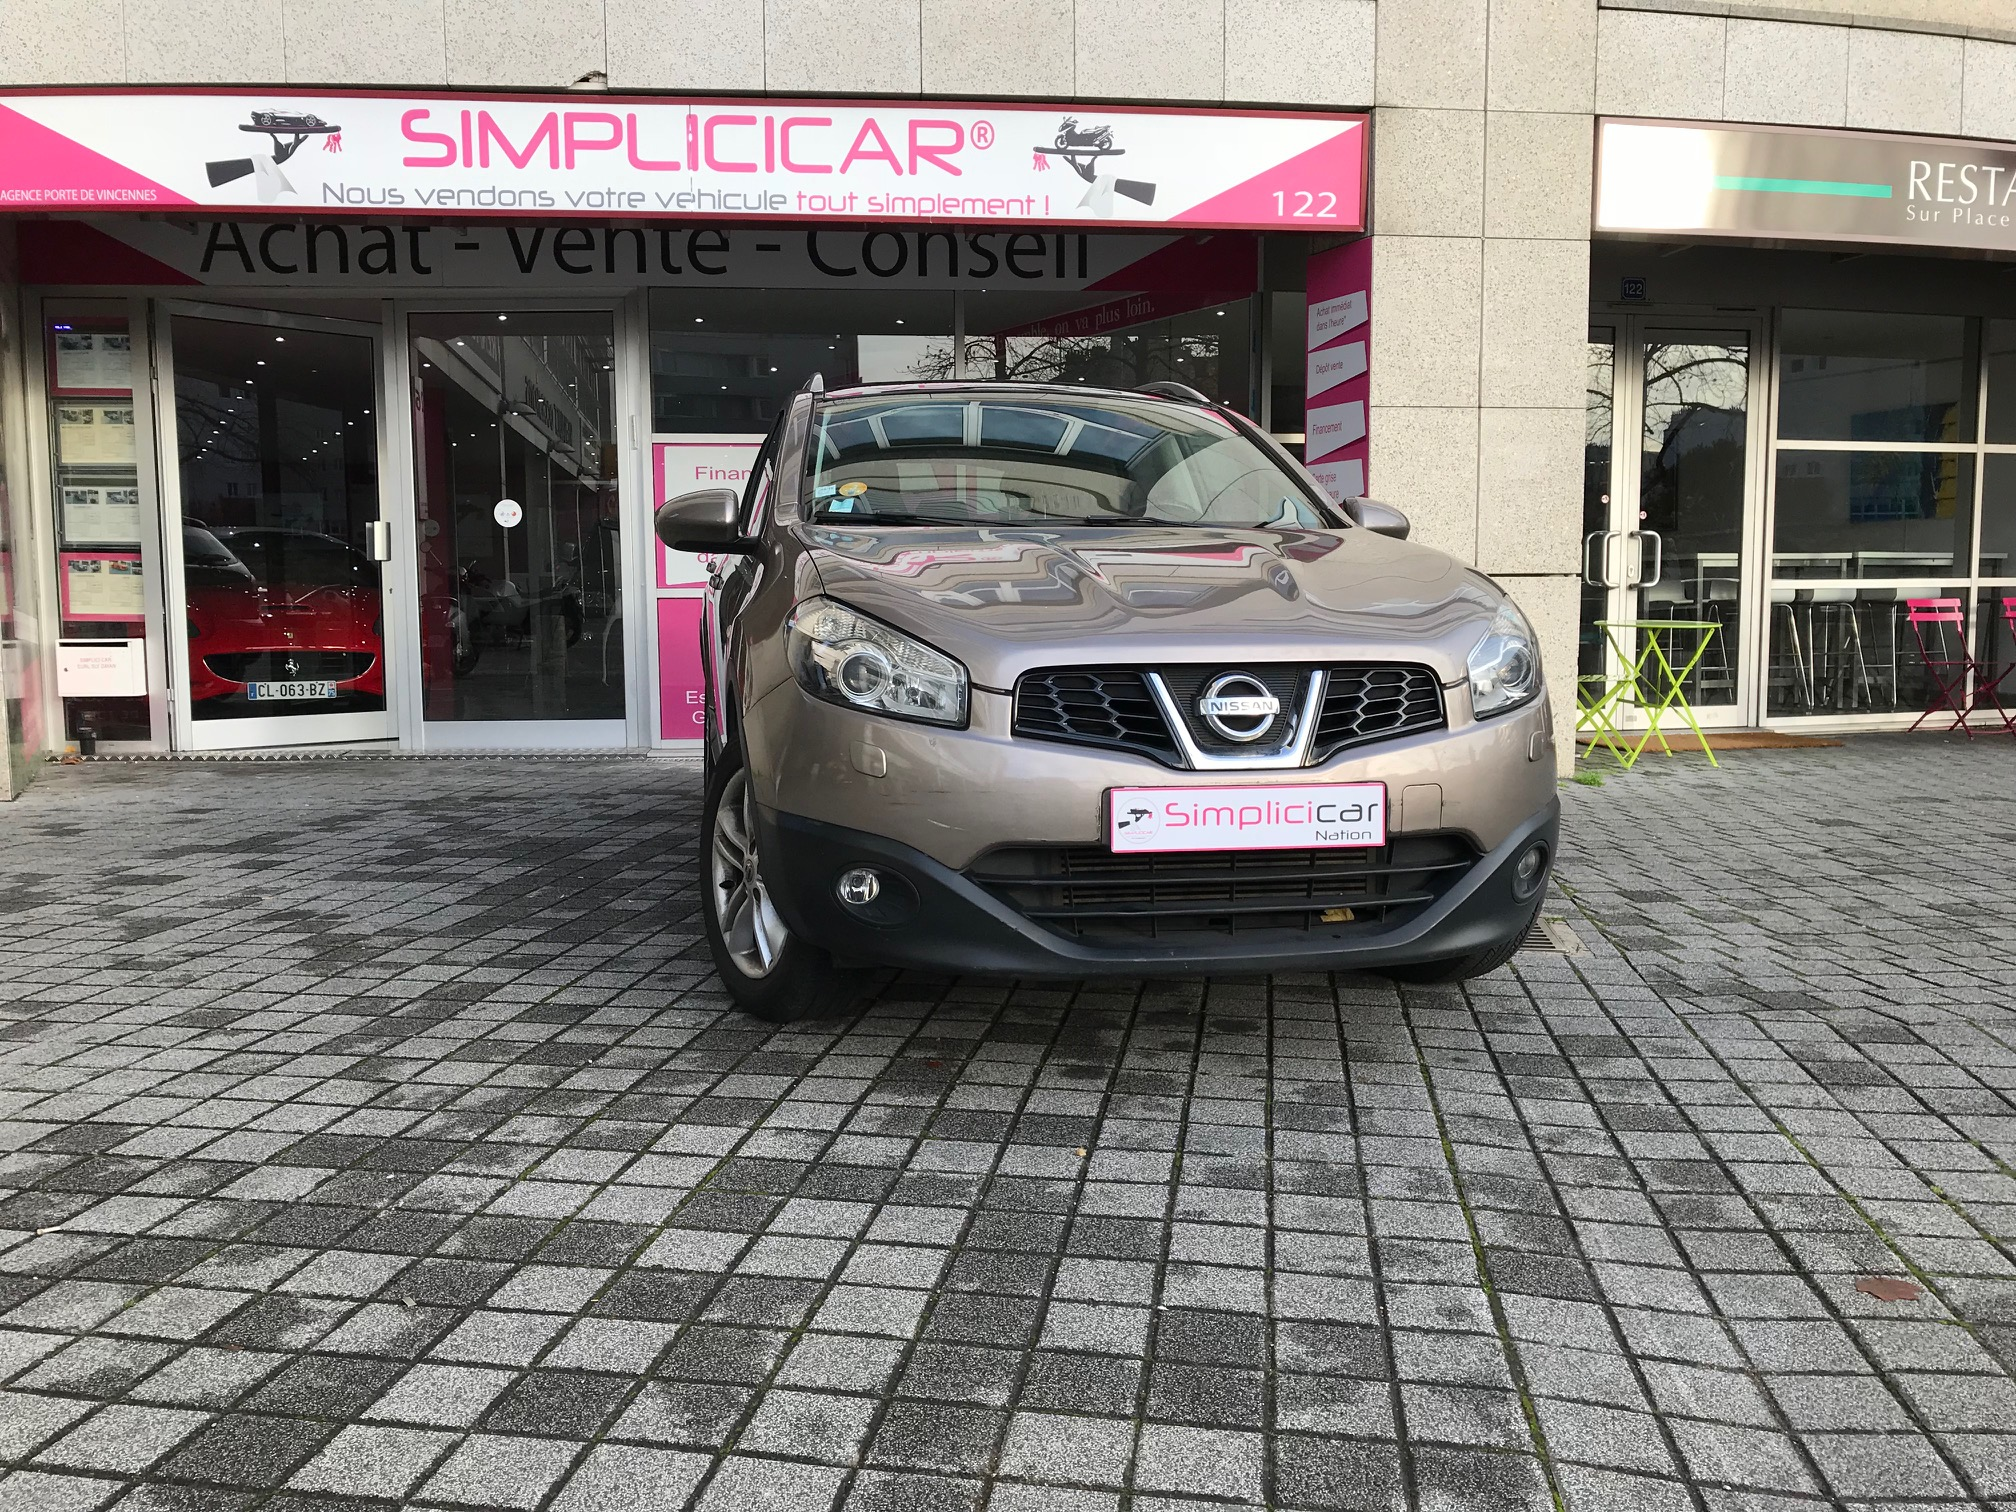 voiture nissan qashqai 2 0 dci 150 fap all mode tekna a occasion diesel 2010 140000 km. Black Bedroom Furniture Sets. Home Design Ideas